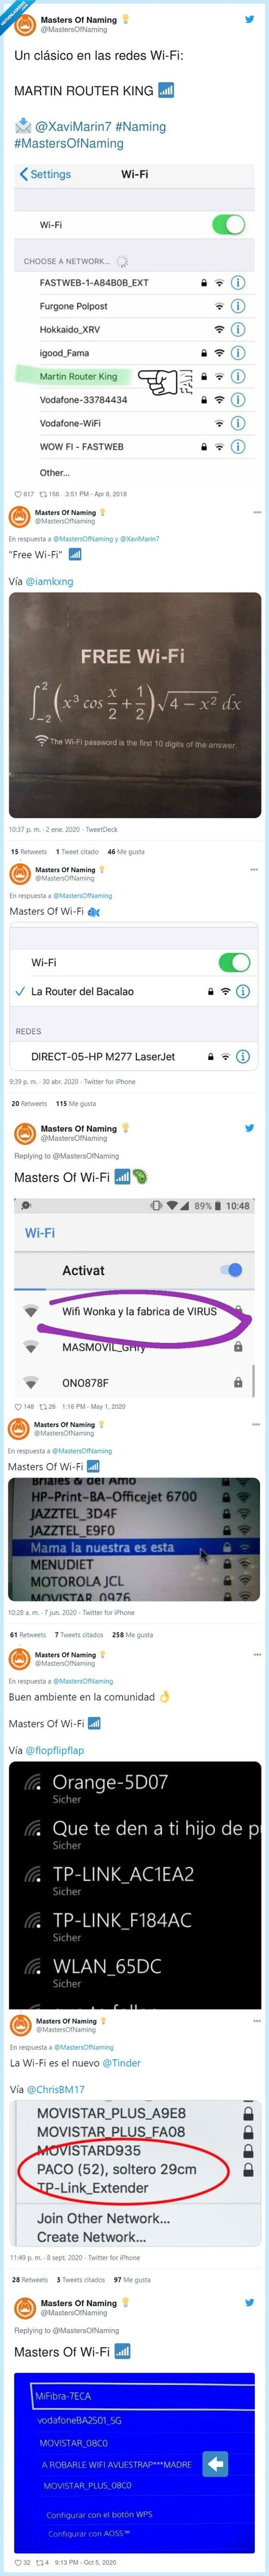 masters,naming,nombres,wifi